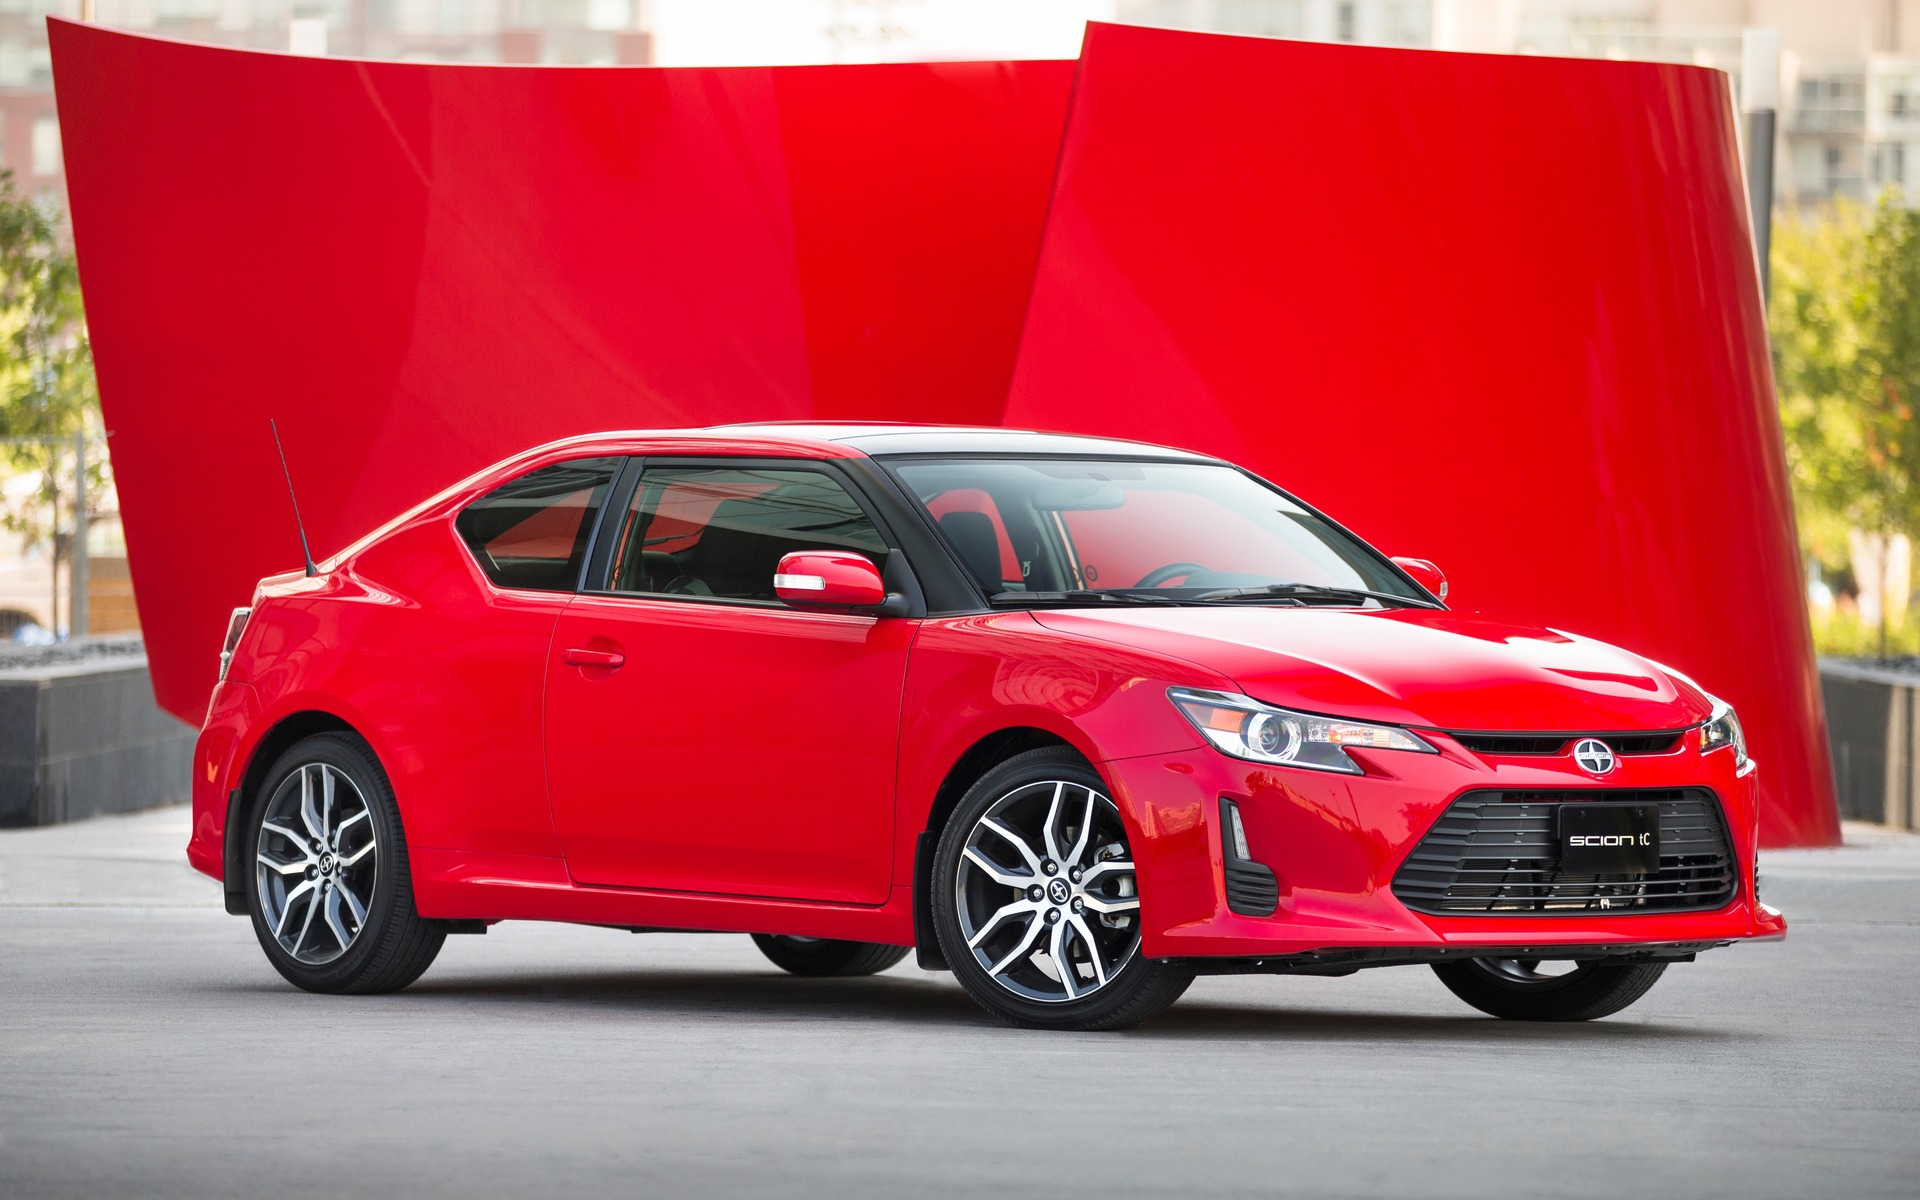 2015 scion tc overshadowed by the fr s review 2014 scion tc the car guide. Black Bedroom Furniture Sets. Home Design Ideas